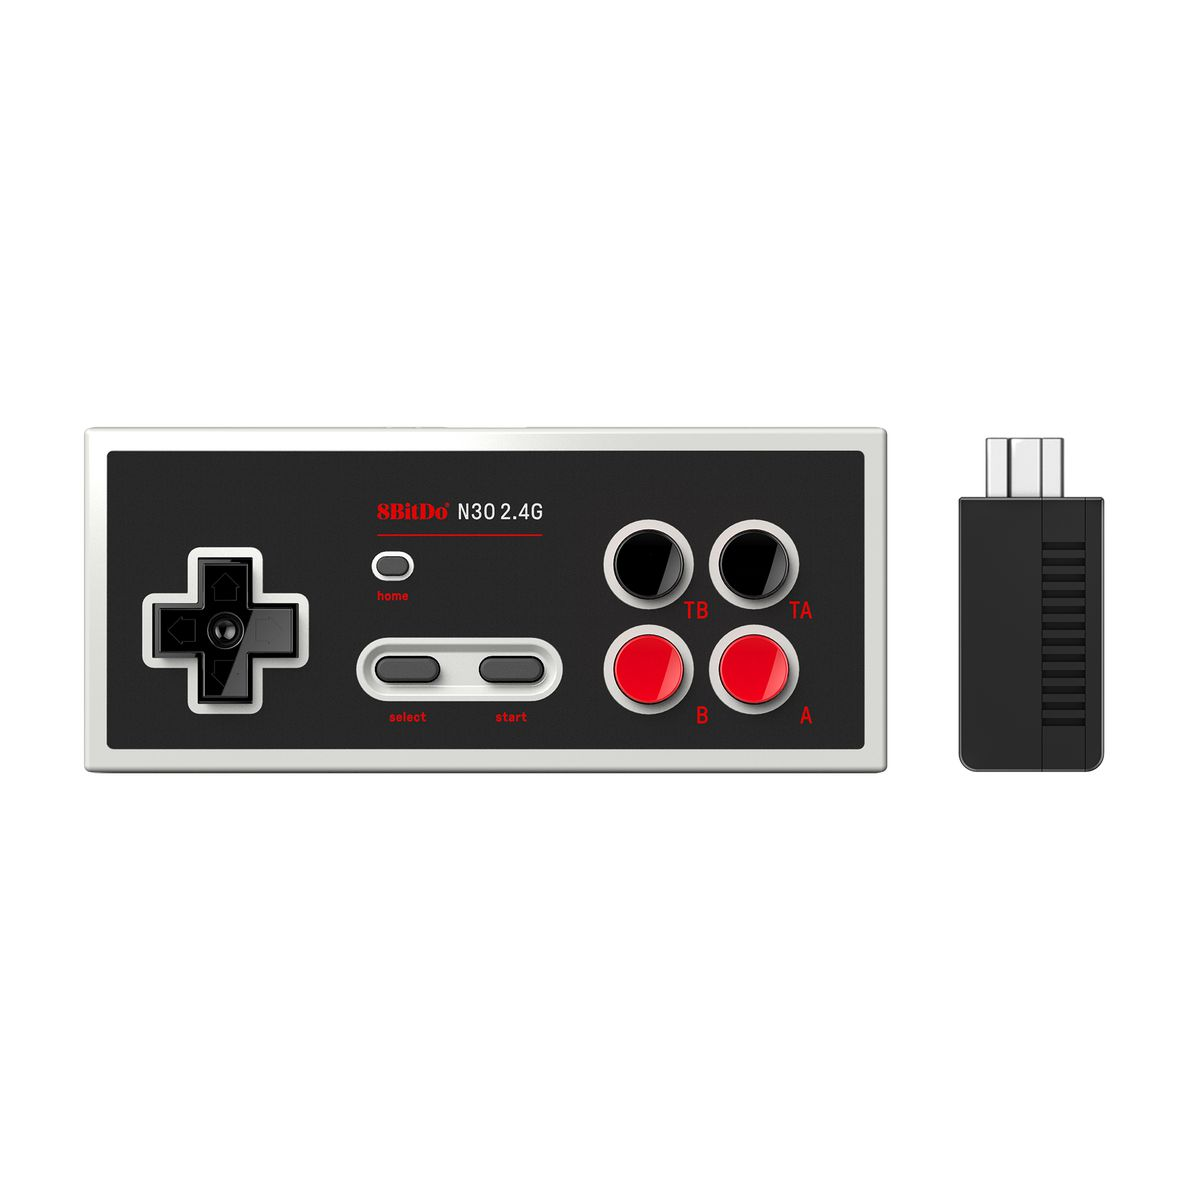 Nintendo S Nes Classic Is Getting A New Wireless Controller In Time